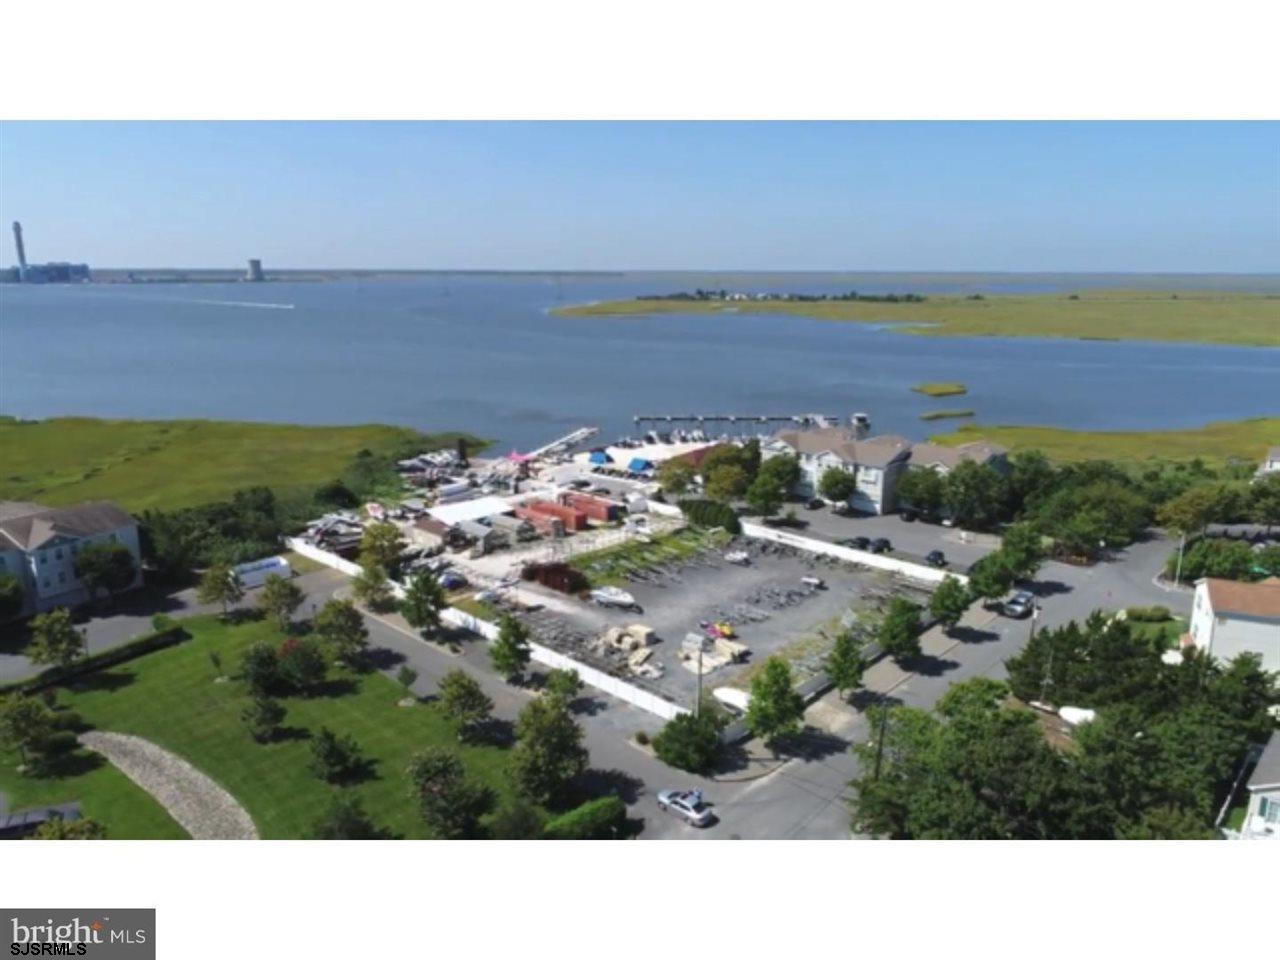 65 Dockside Dr, Somers Point NJ 08244 - Photo 1